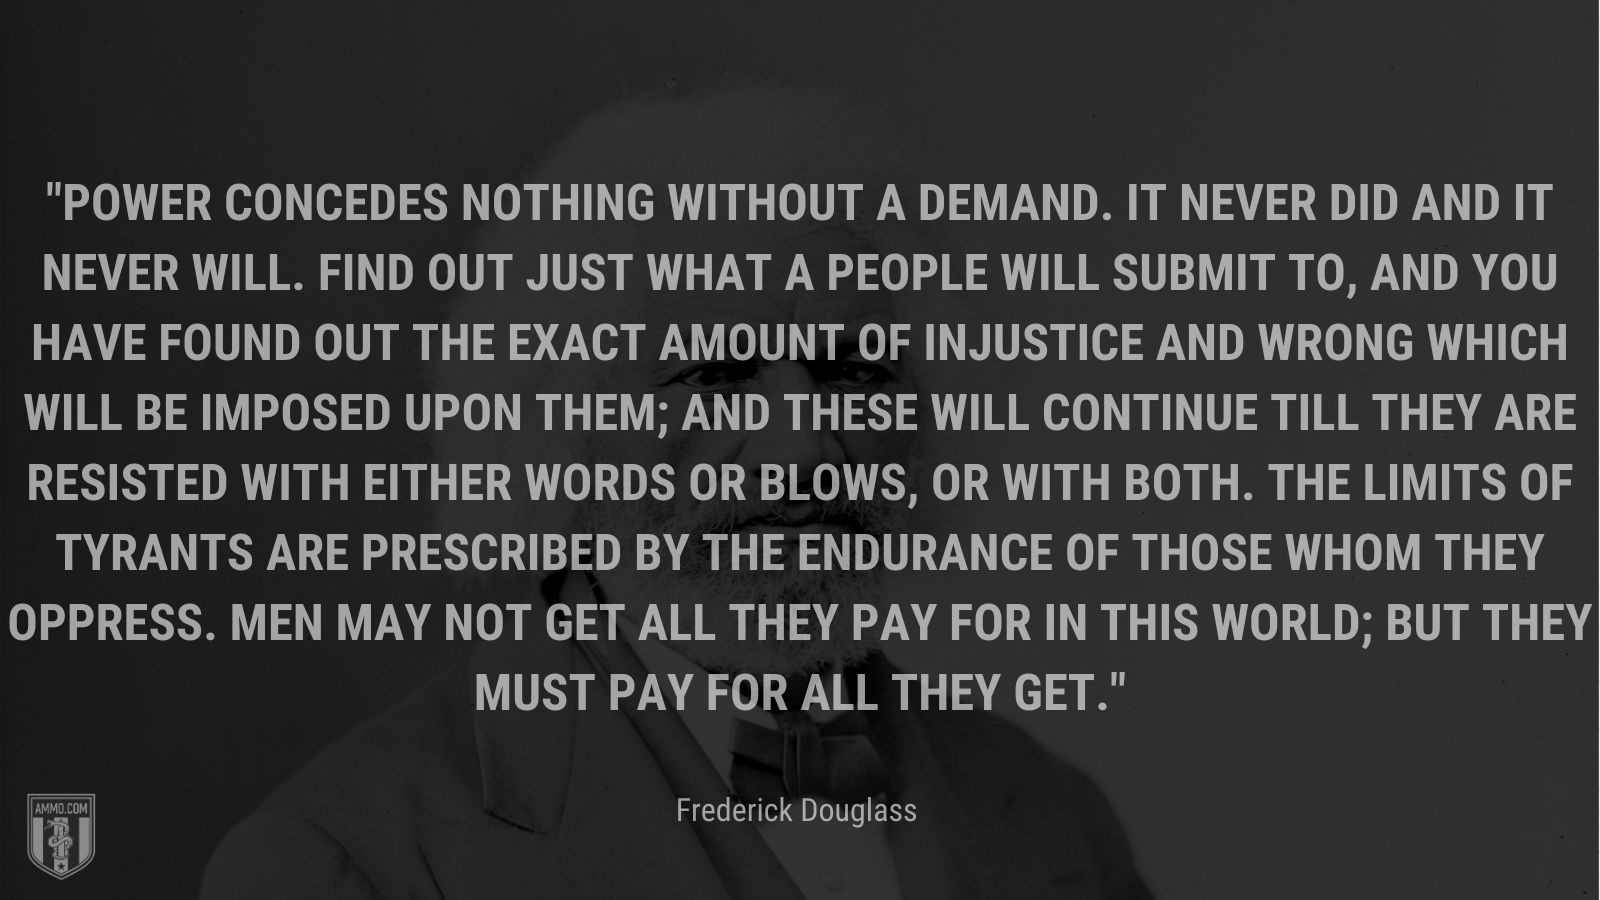 """""""Power concedes nothing without a demand. It never did and it never will. Find out just what a people will submit to, and you have found out the exact amount of injustice and wrong which will be imposed upon them; and these will continue till they are resisted with either words or blows, or with both. The limits of tyrants are prescribed by the endurance of those whom they oppress. Men may not get all they pay for in this world; but they must pay for all they get. - Frederick Douglass"""